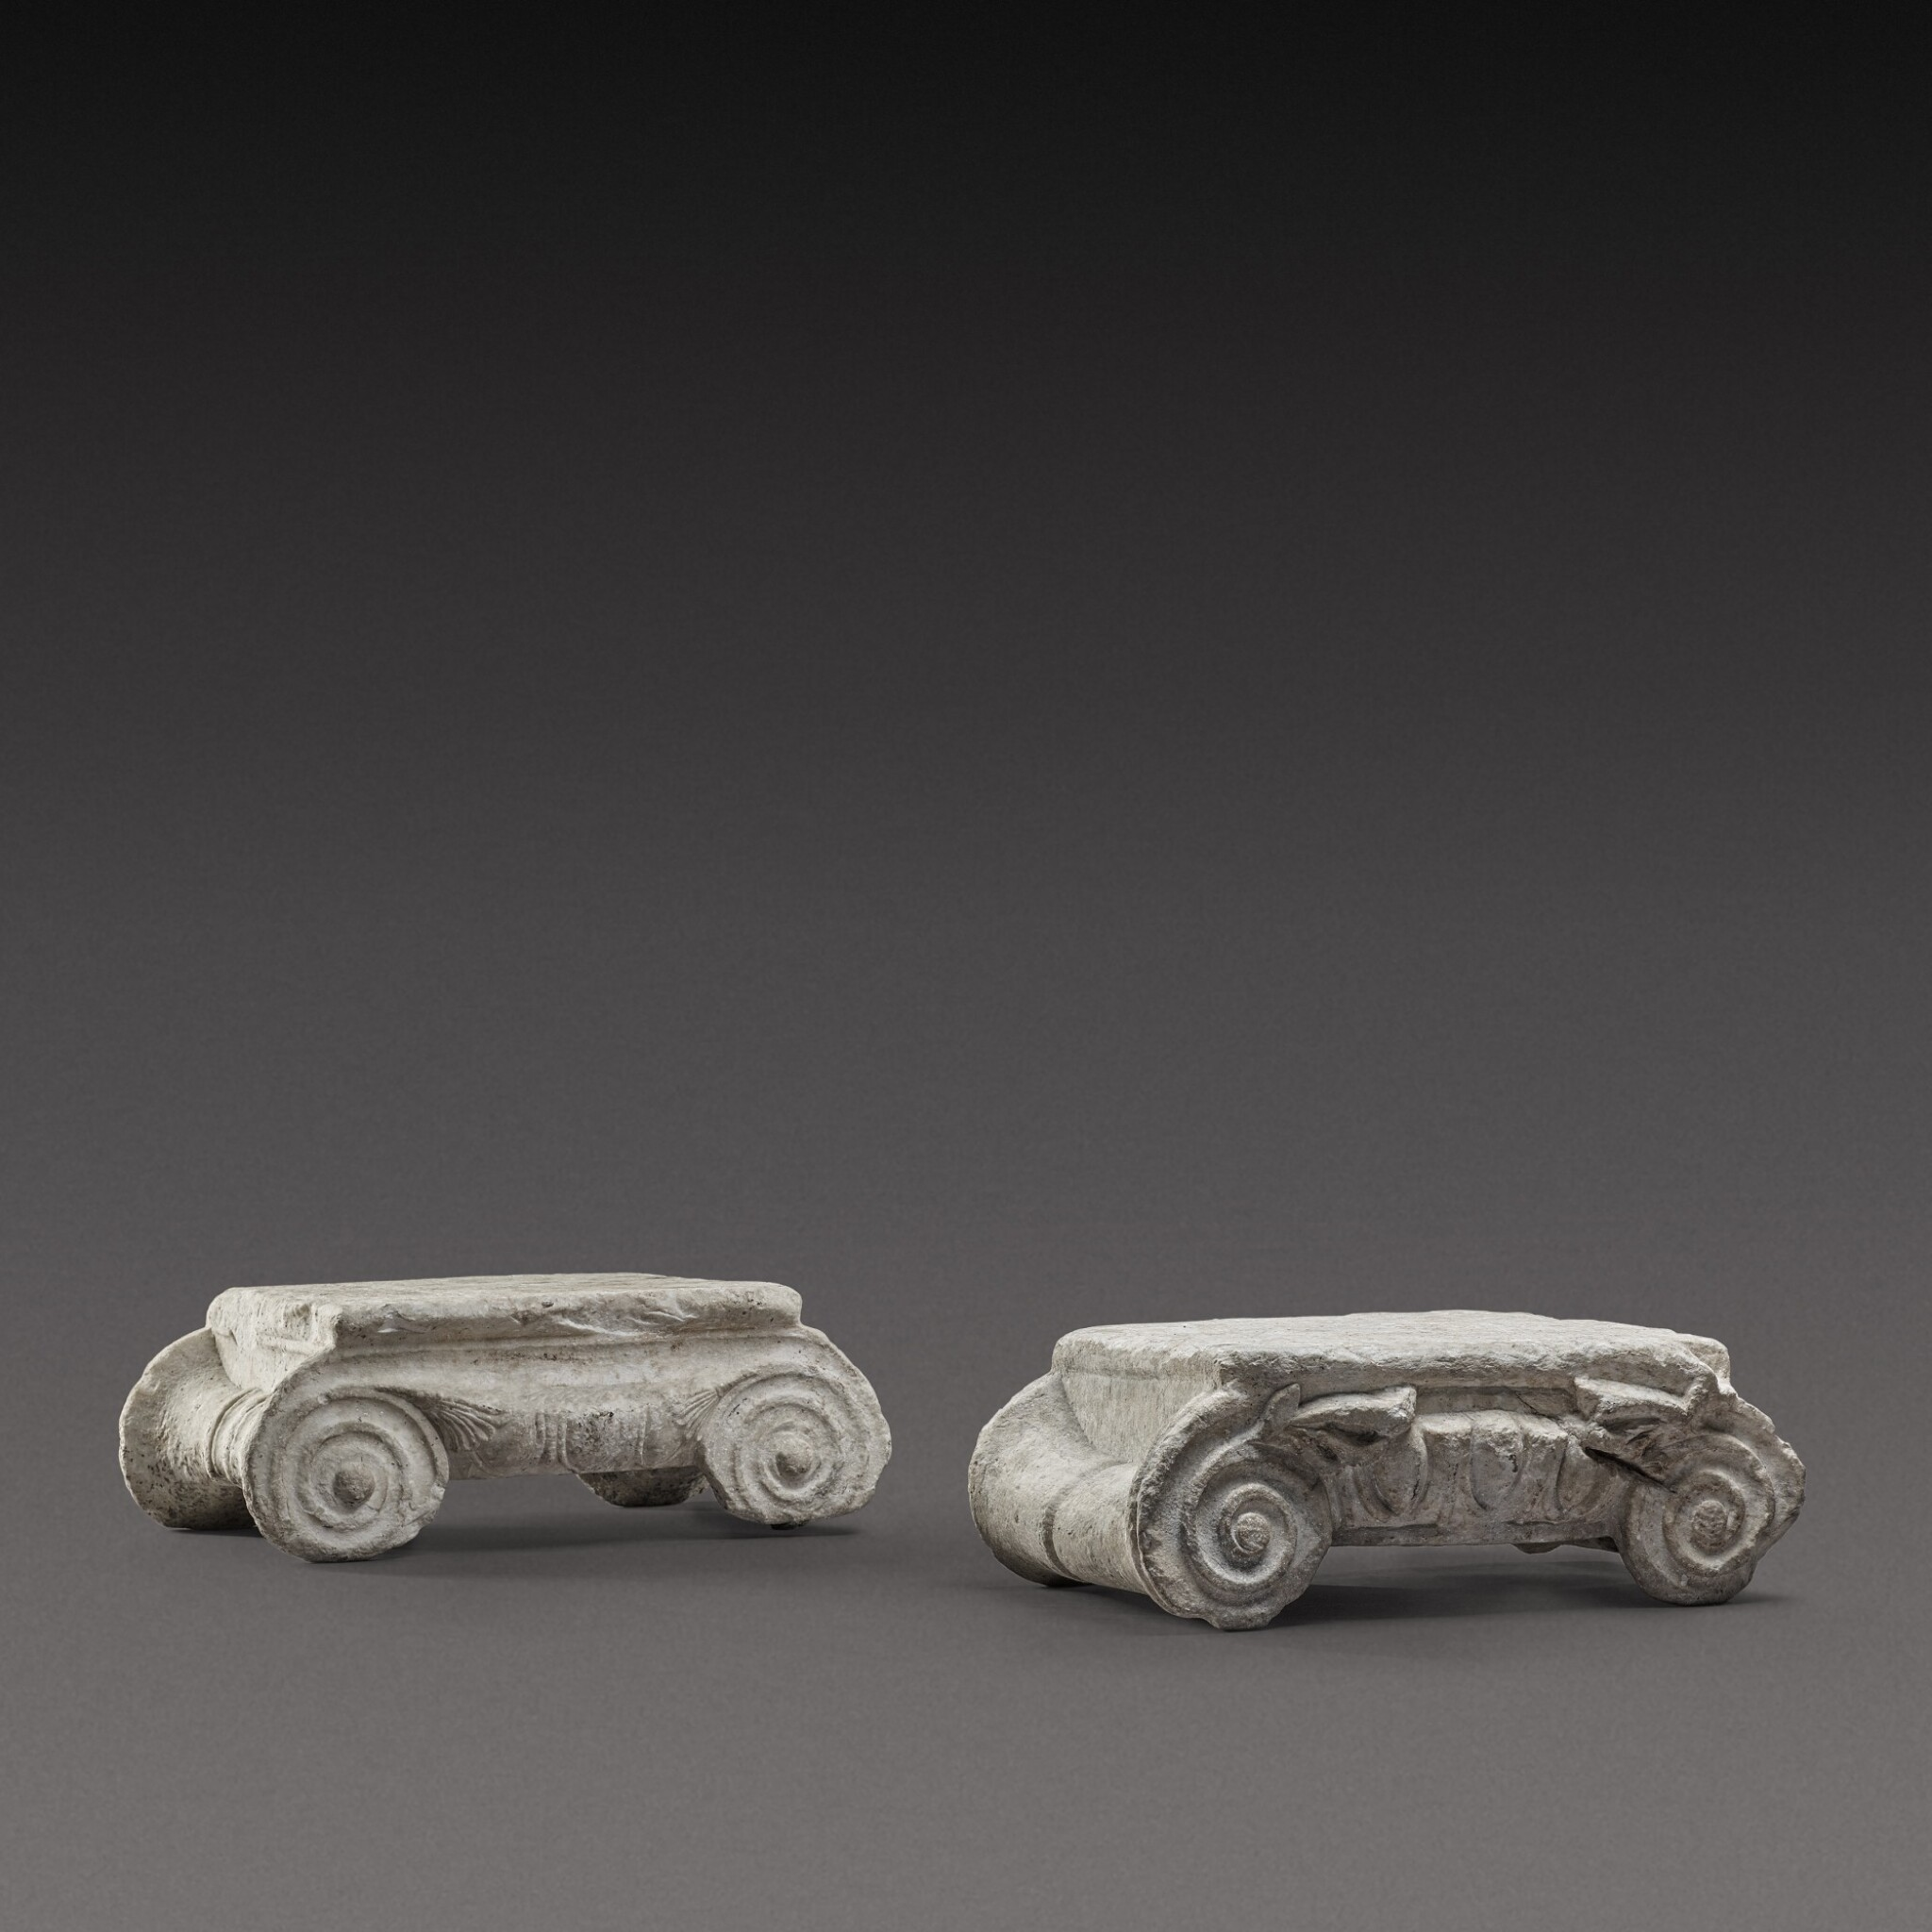 View 1 of Lot 79. Two Ionic Marble Capitals, circa 1st Century A.D..